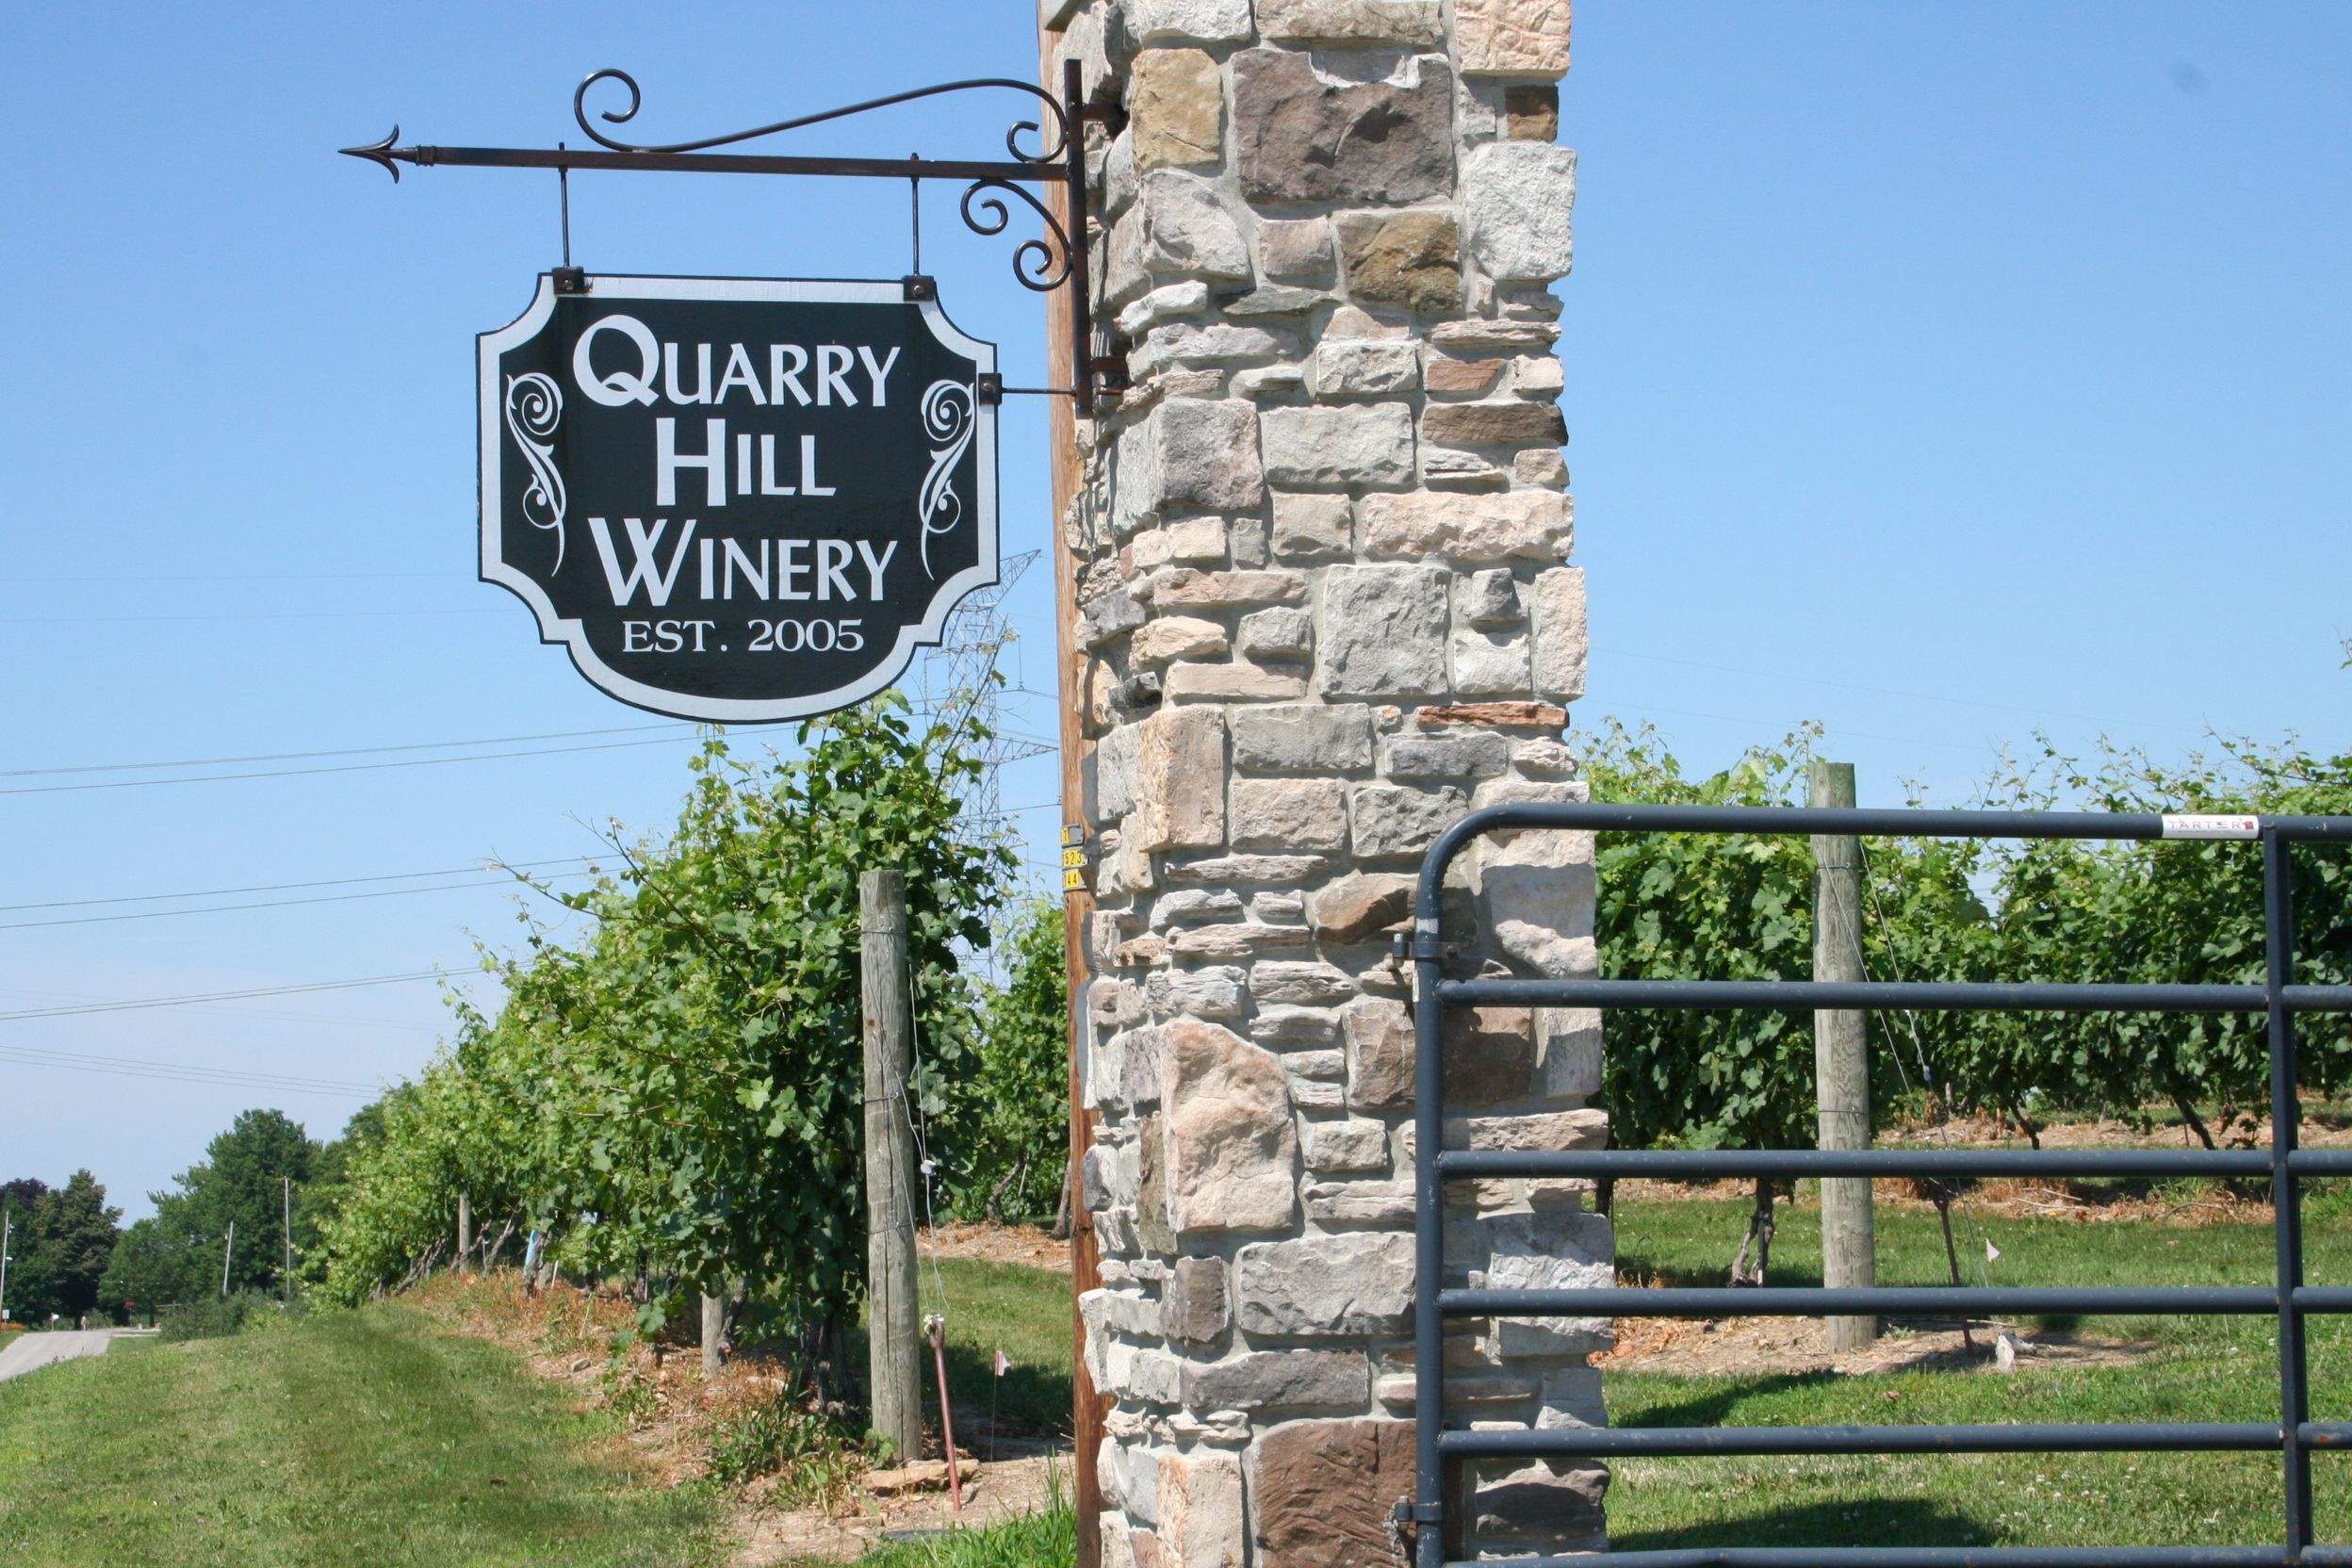 Quarry Hill Winery Winery Lake Erie Ohio Ohio Breweries